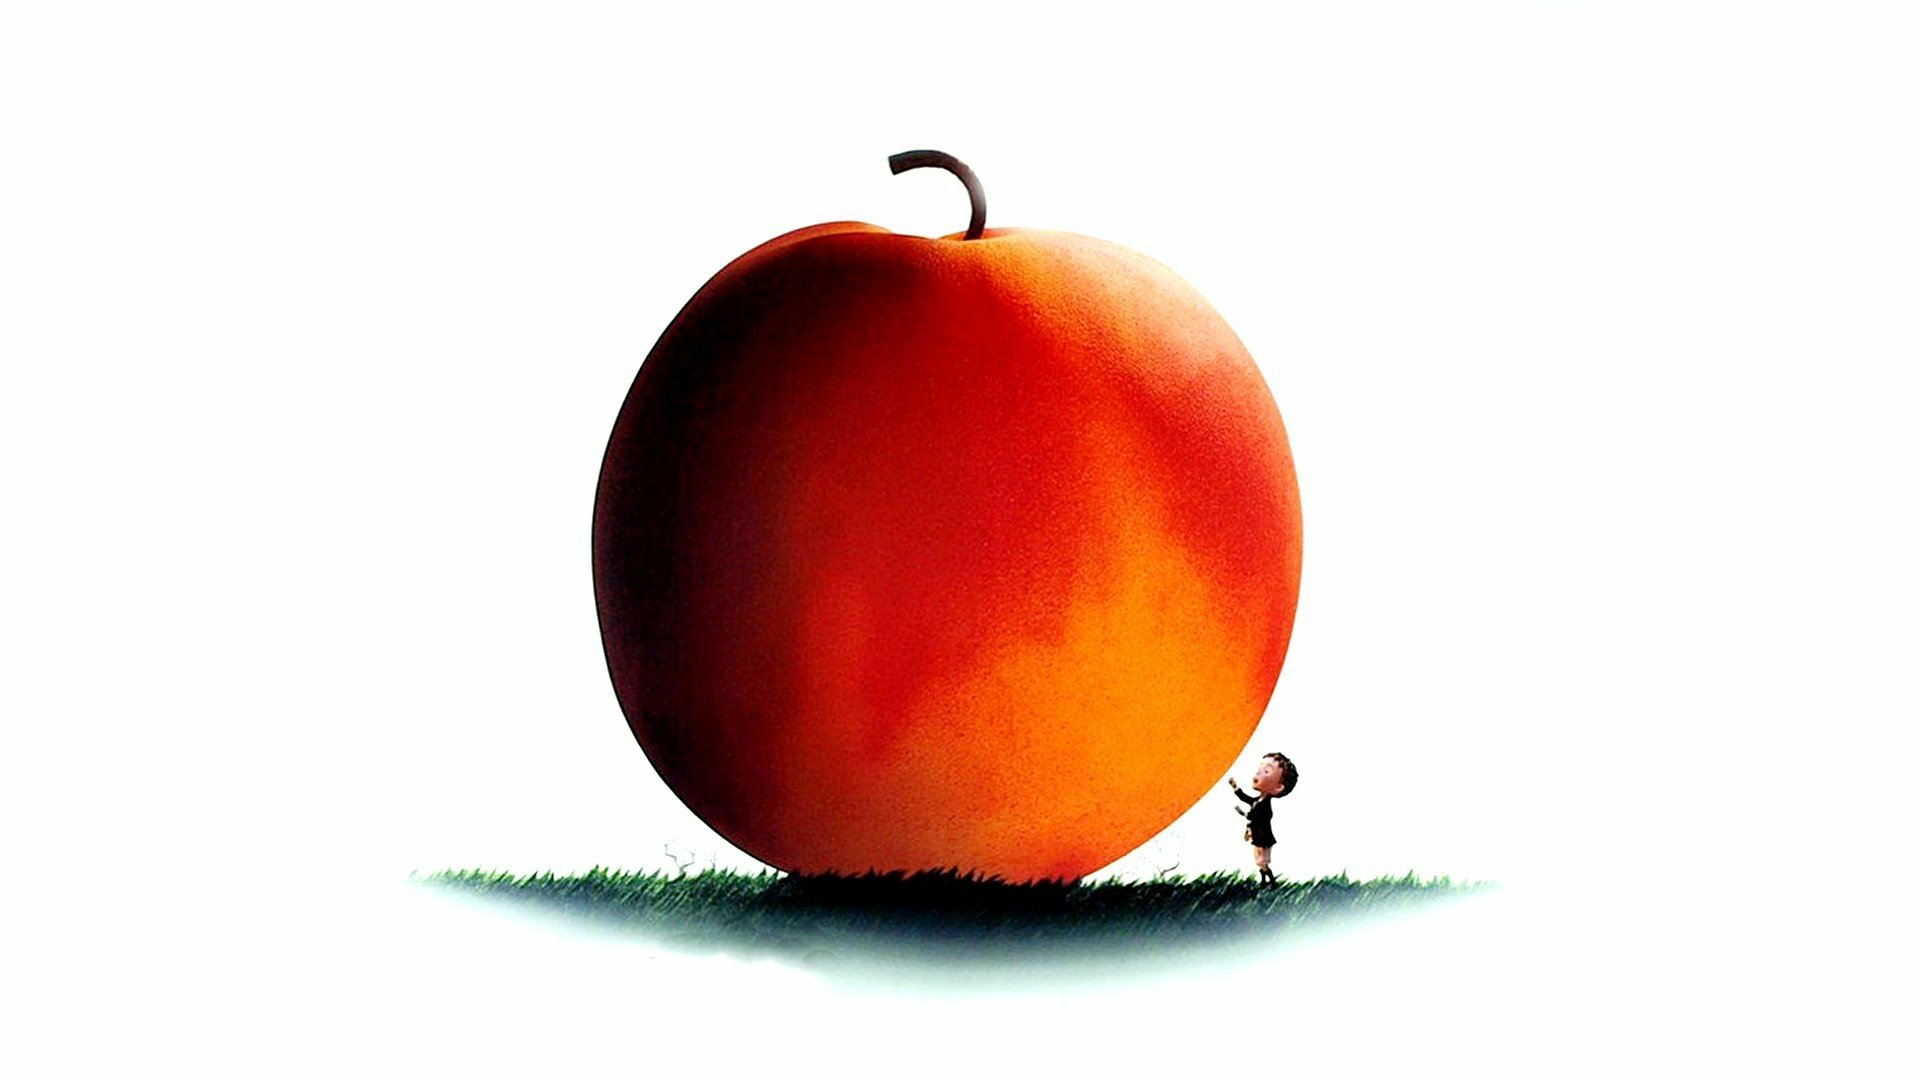 james and the giant peach hd wallpaper background image 1920x1080 id 804993 wallpaper abyss james and the giant peach hd wallpaper